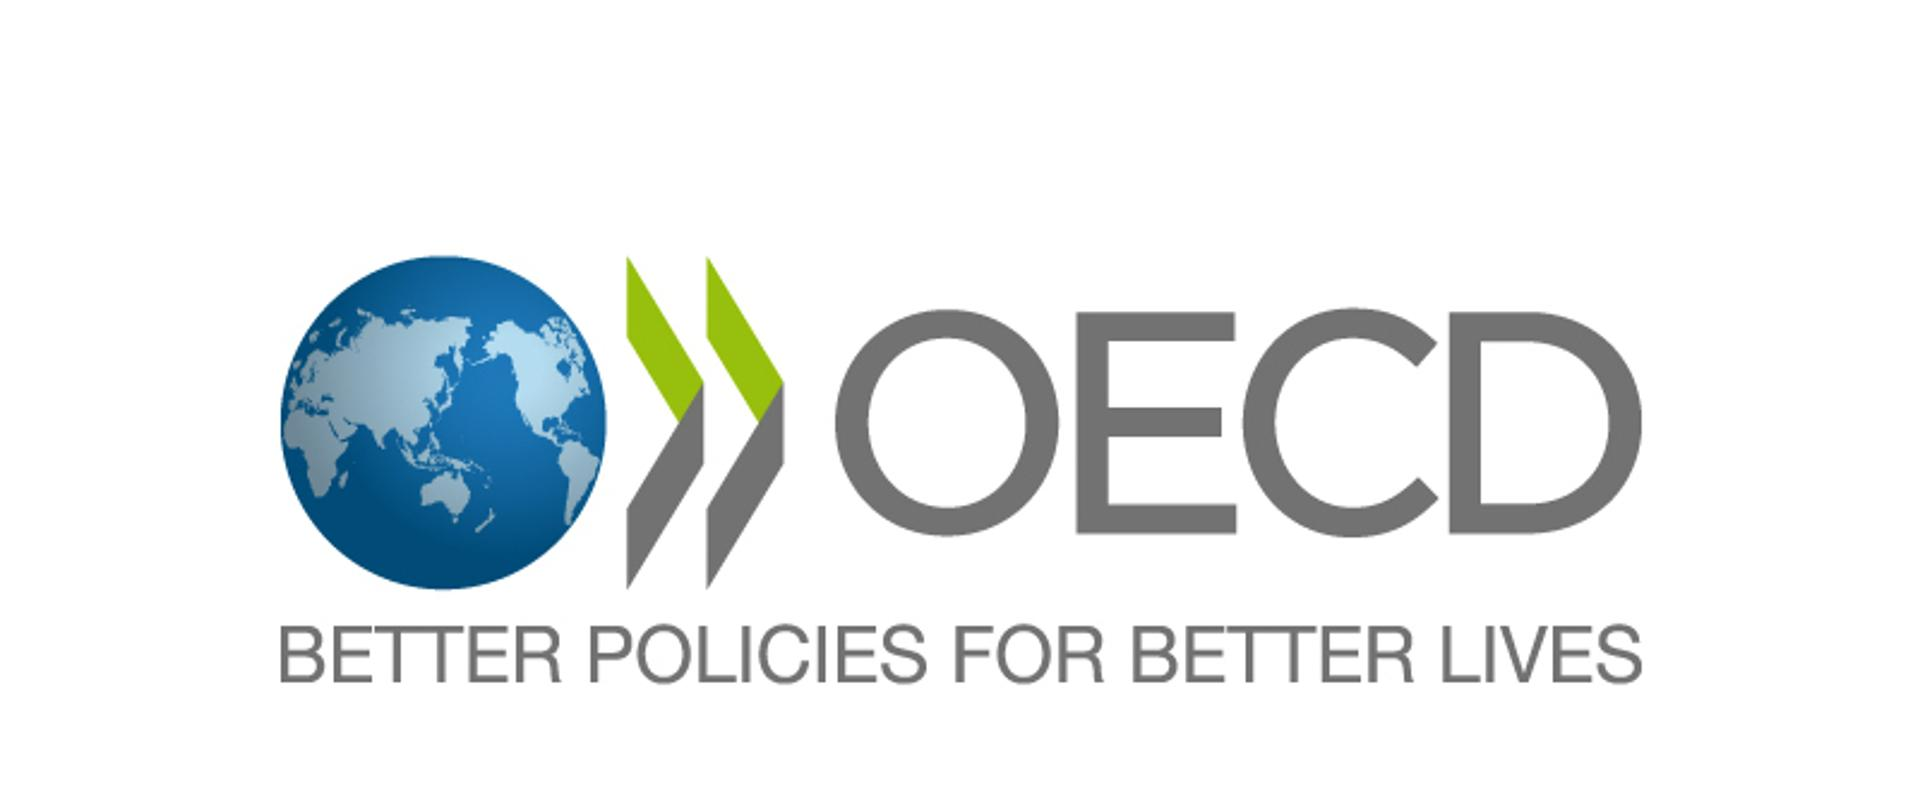 Logo and sign Better policies for better lives